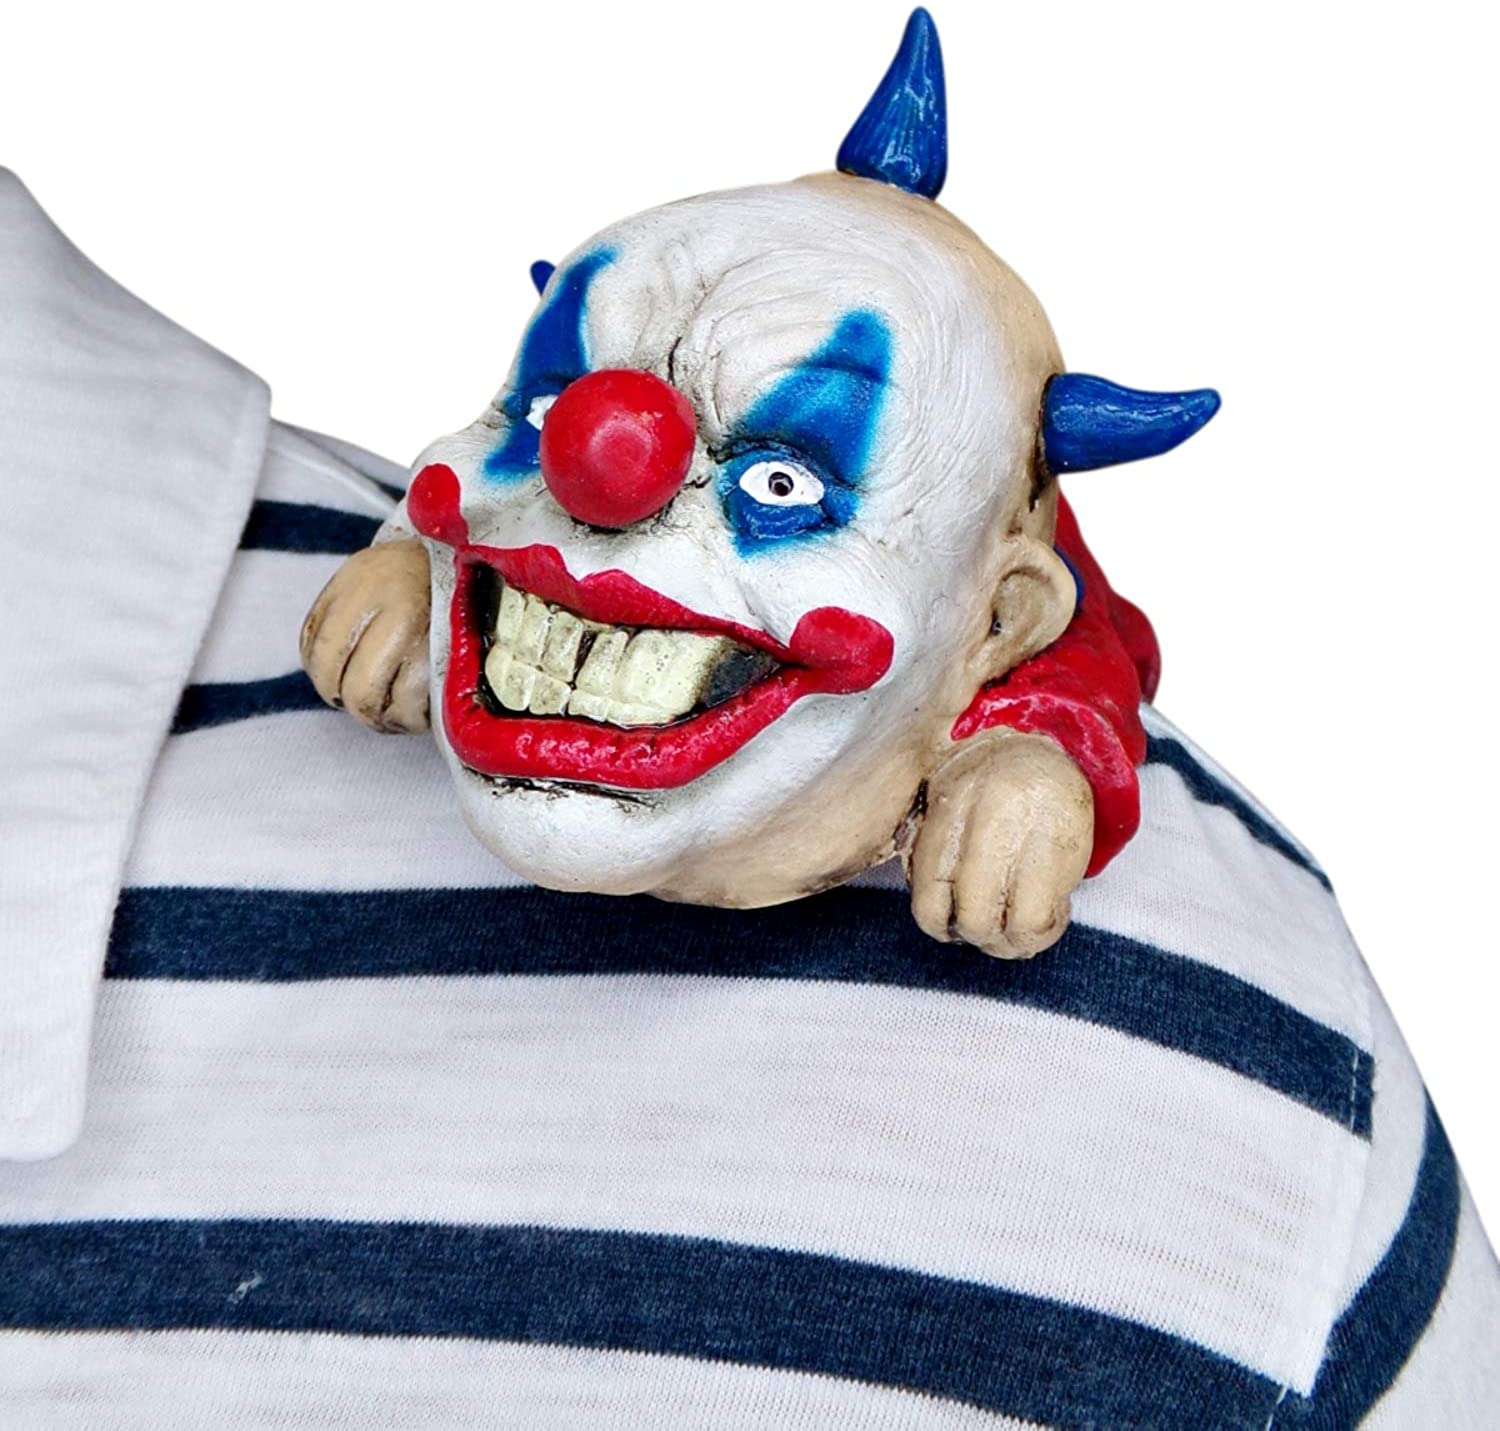 Scary Clown Halloween Costume Accessory with Crazy Make Up and Hair, Shoulder Sitter